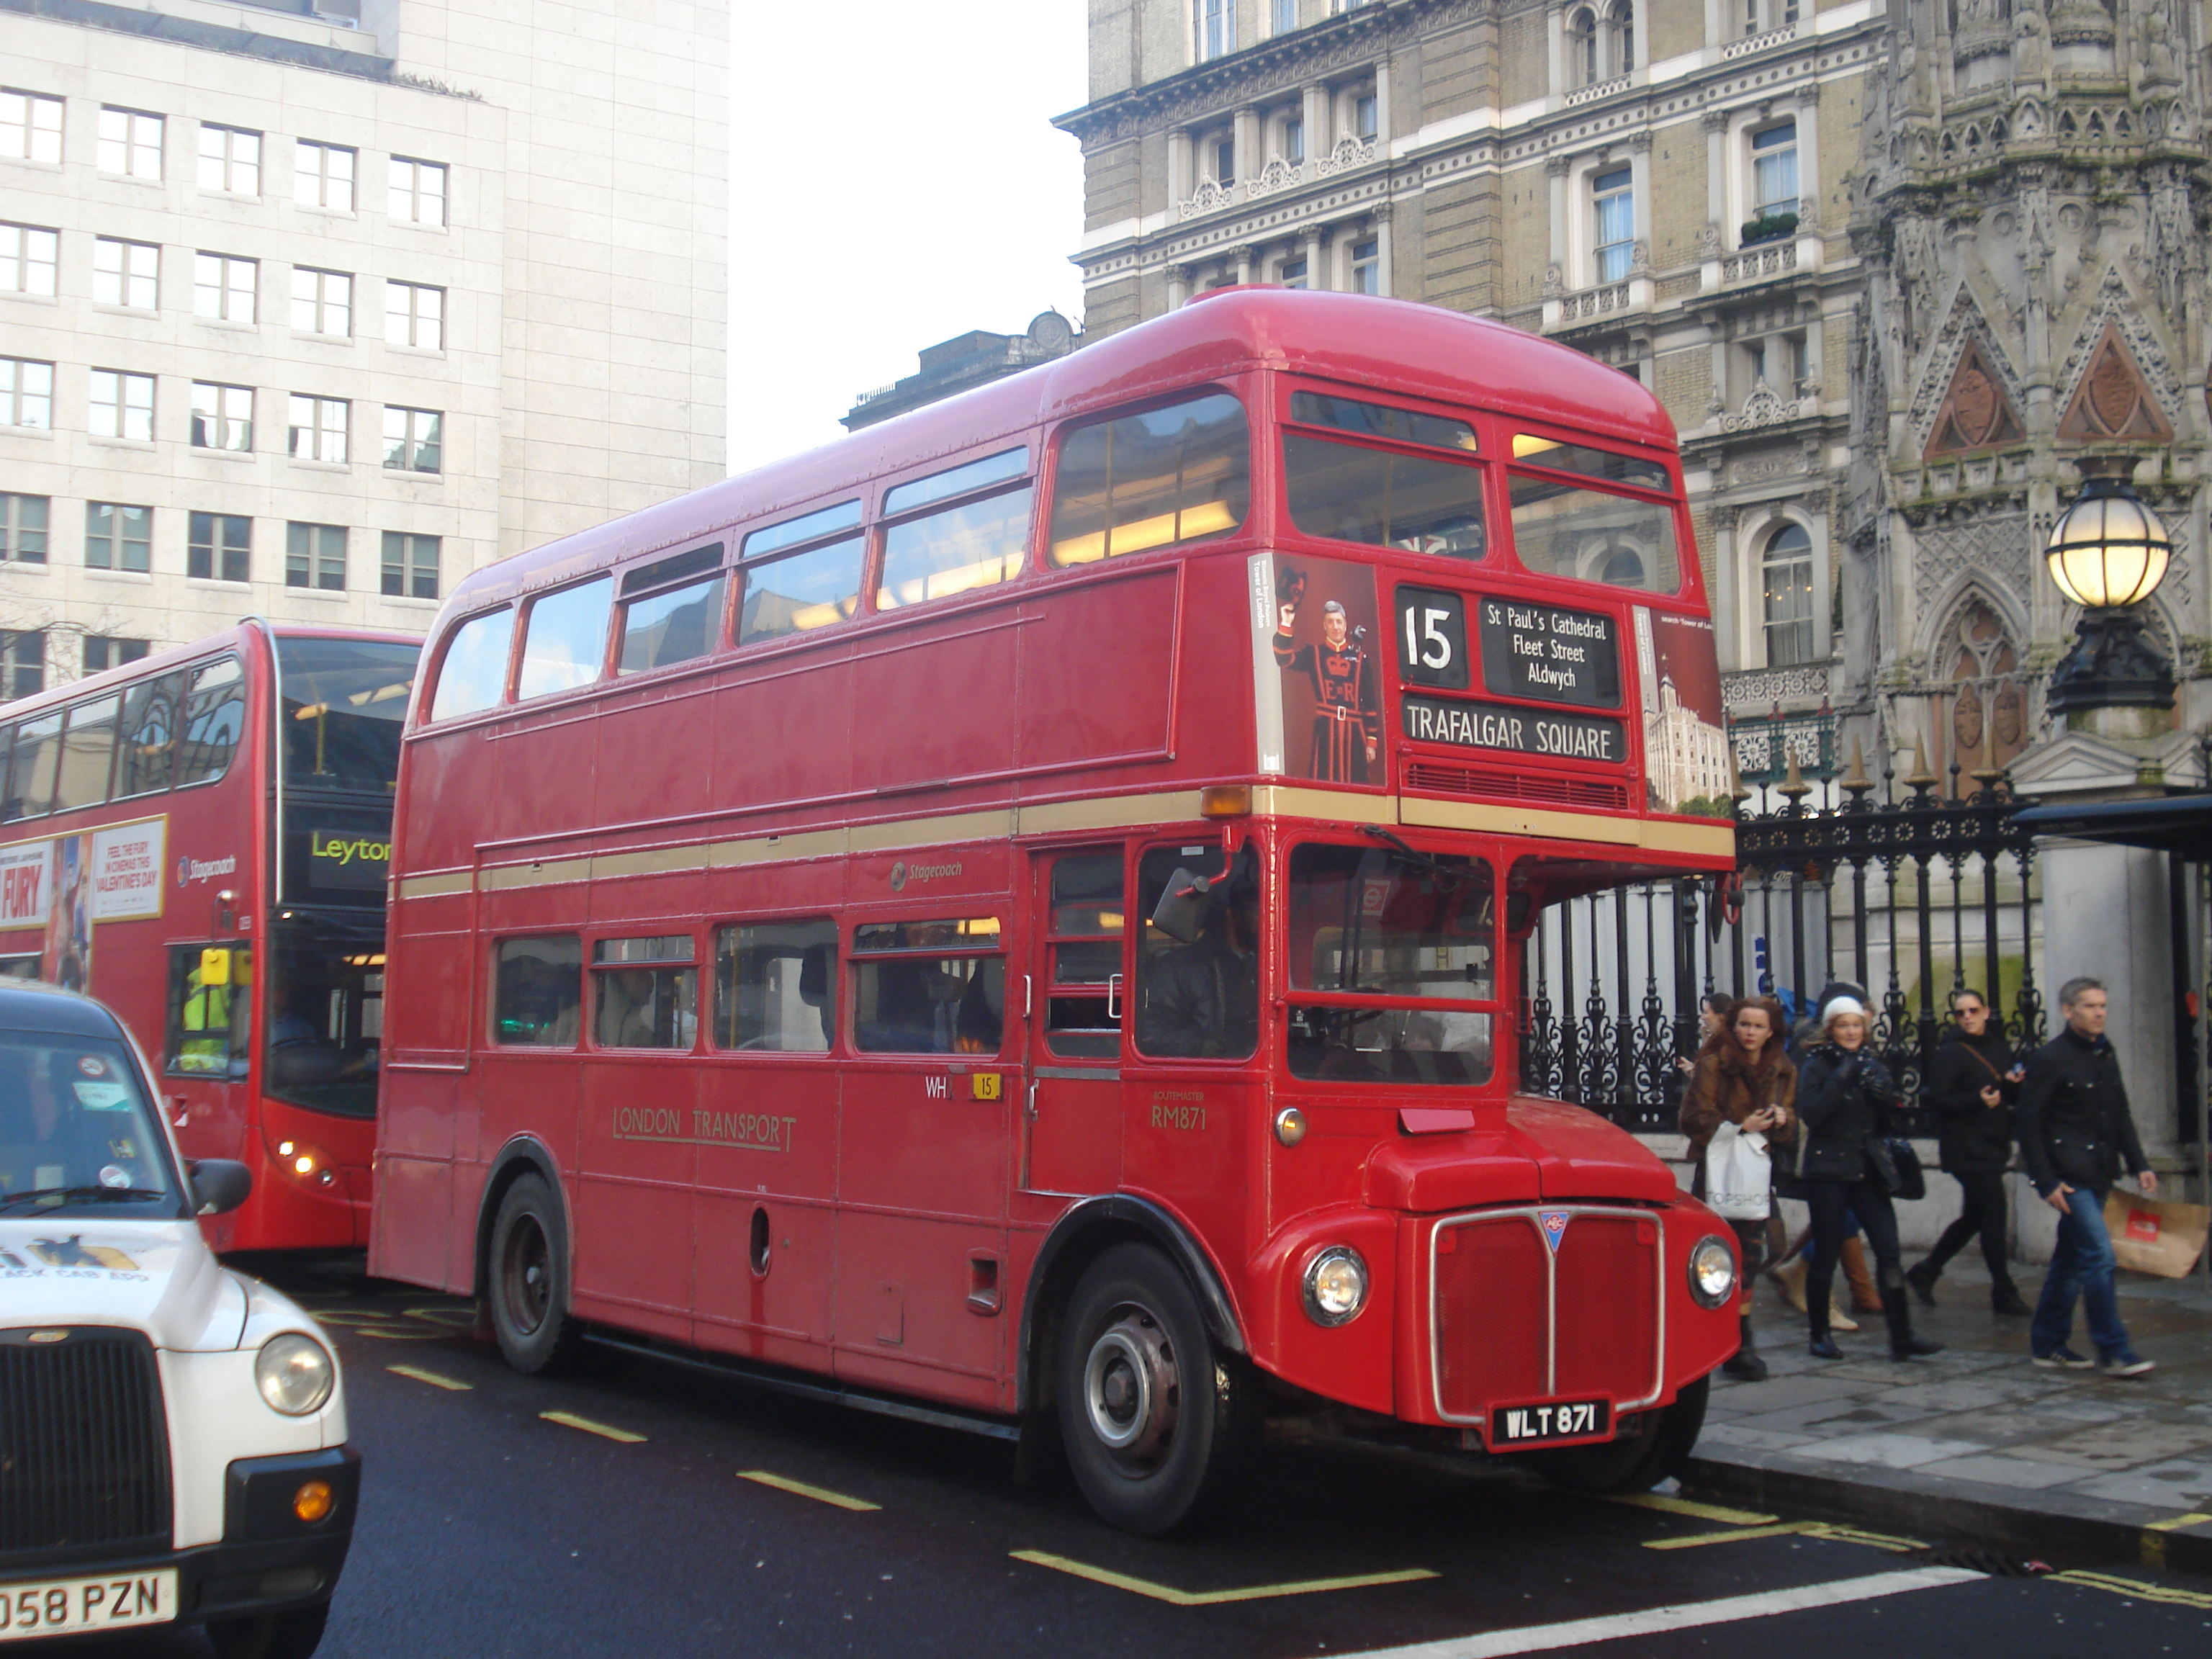 london buses route 15 (heritage) - wikipedia